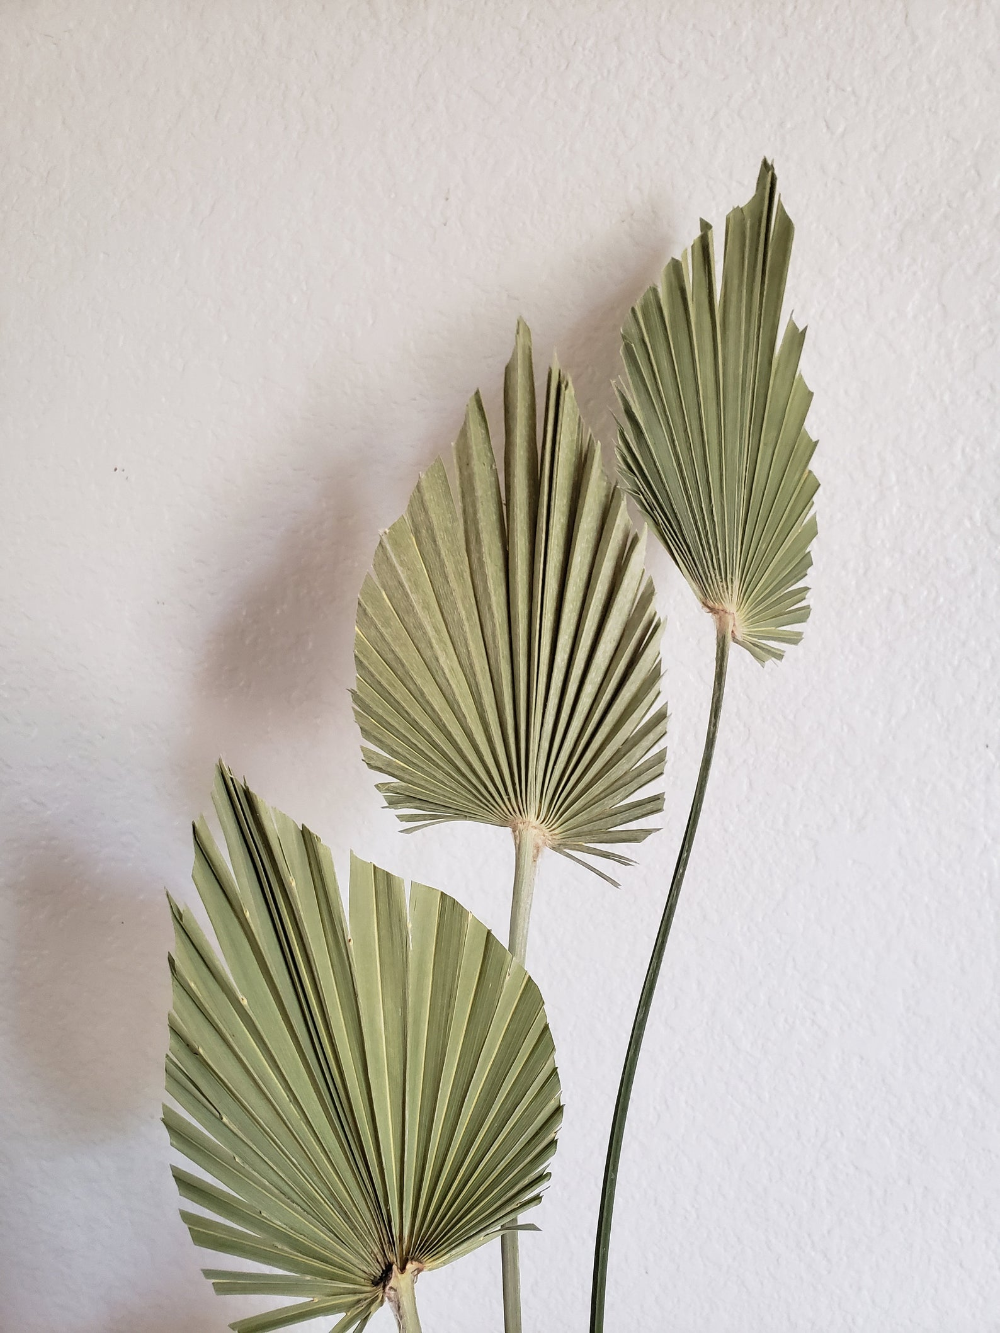 Trimmed Palm Flutters Dried Sage Green Palm Leaves Dried Etsy Palm Leaf Decor Leaf Decor Sage Green